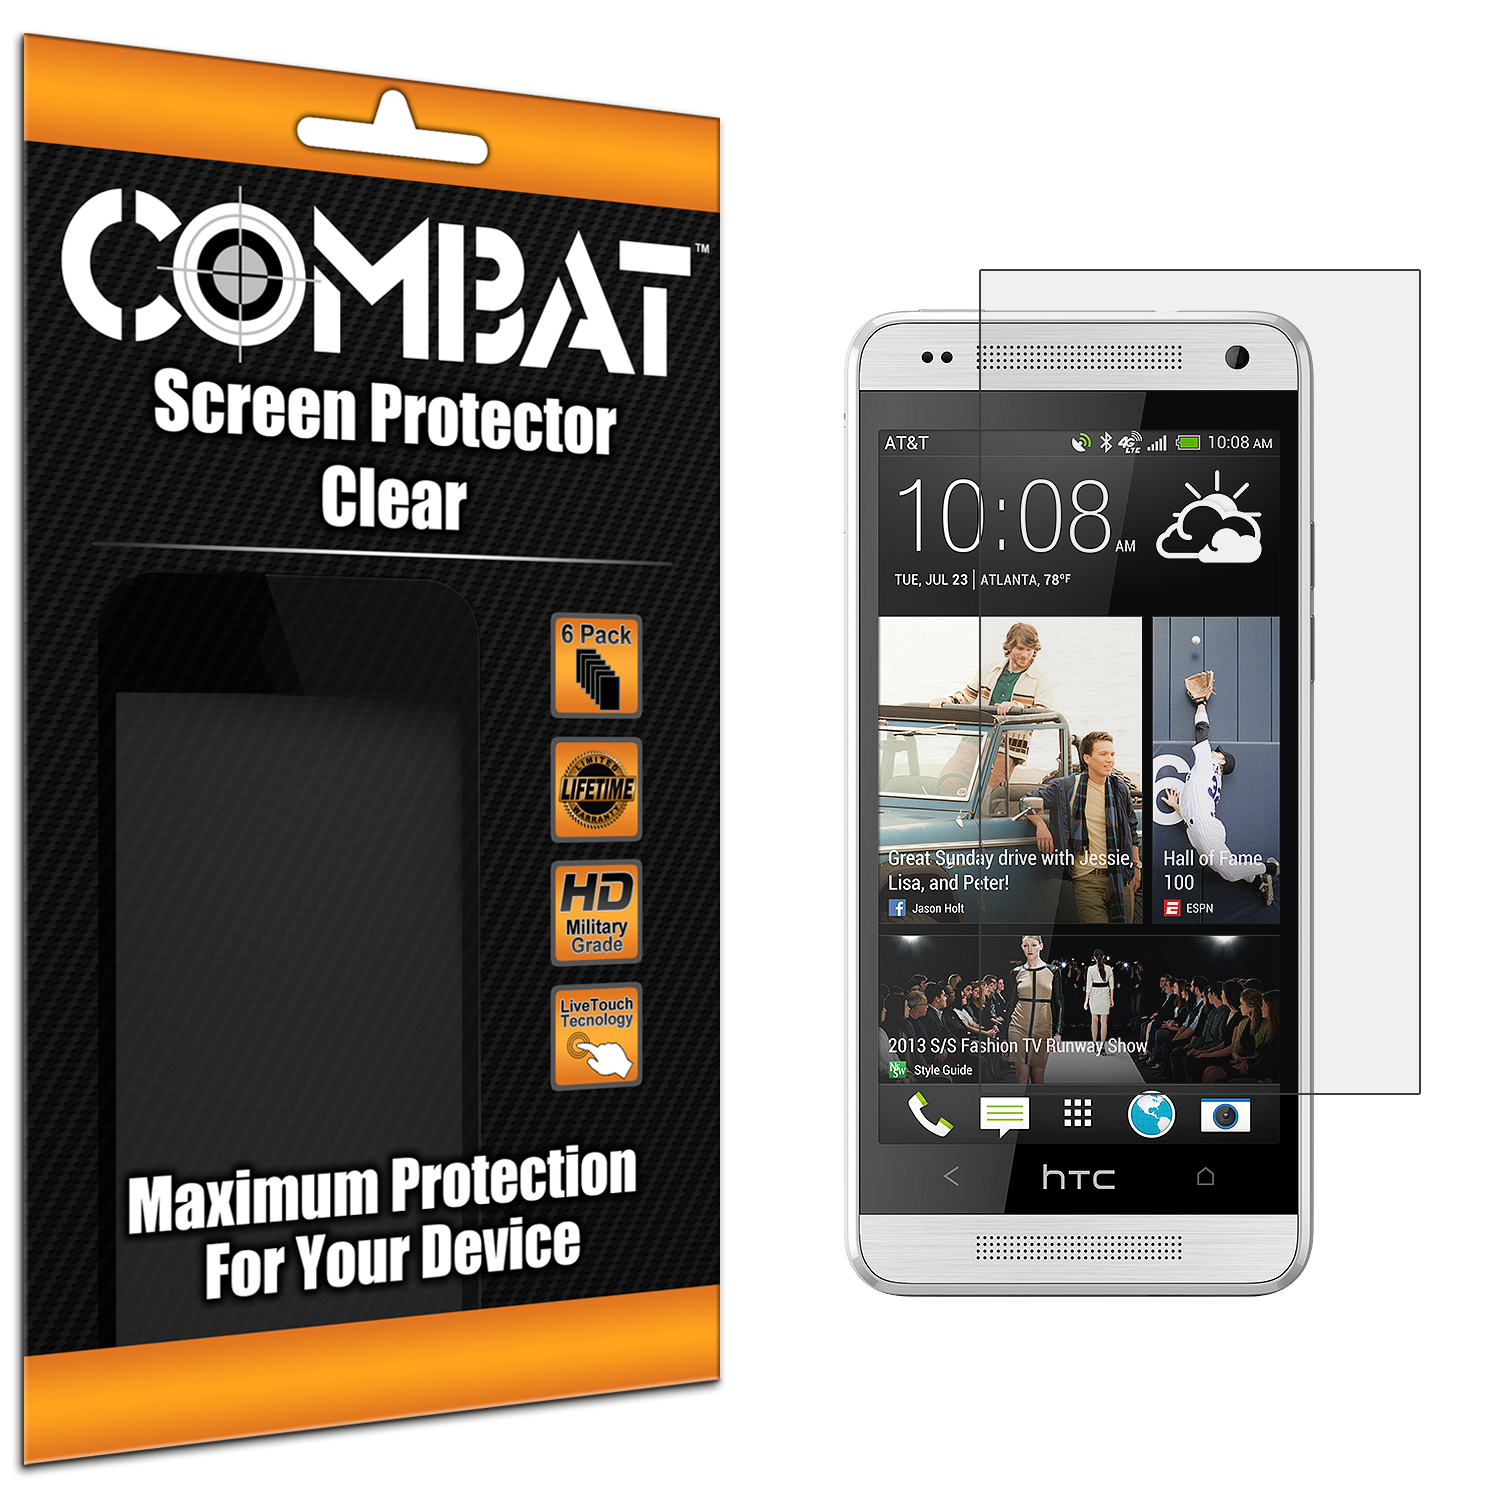 HTC One Mini Combat 6 Pack HD Clear Screen Protector